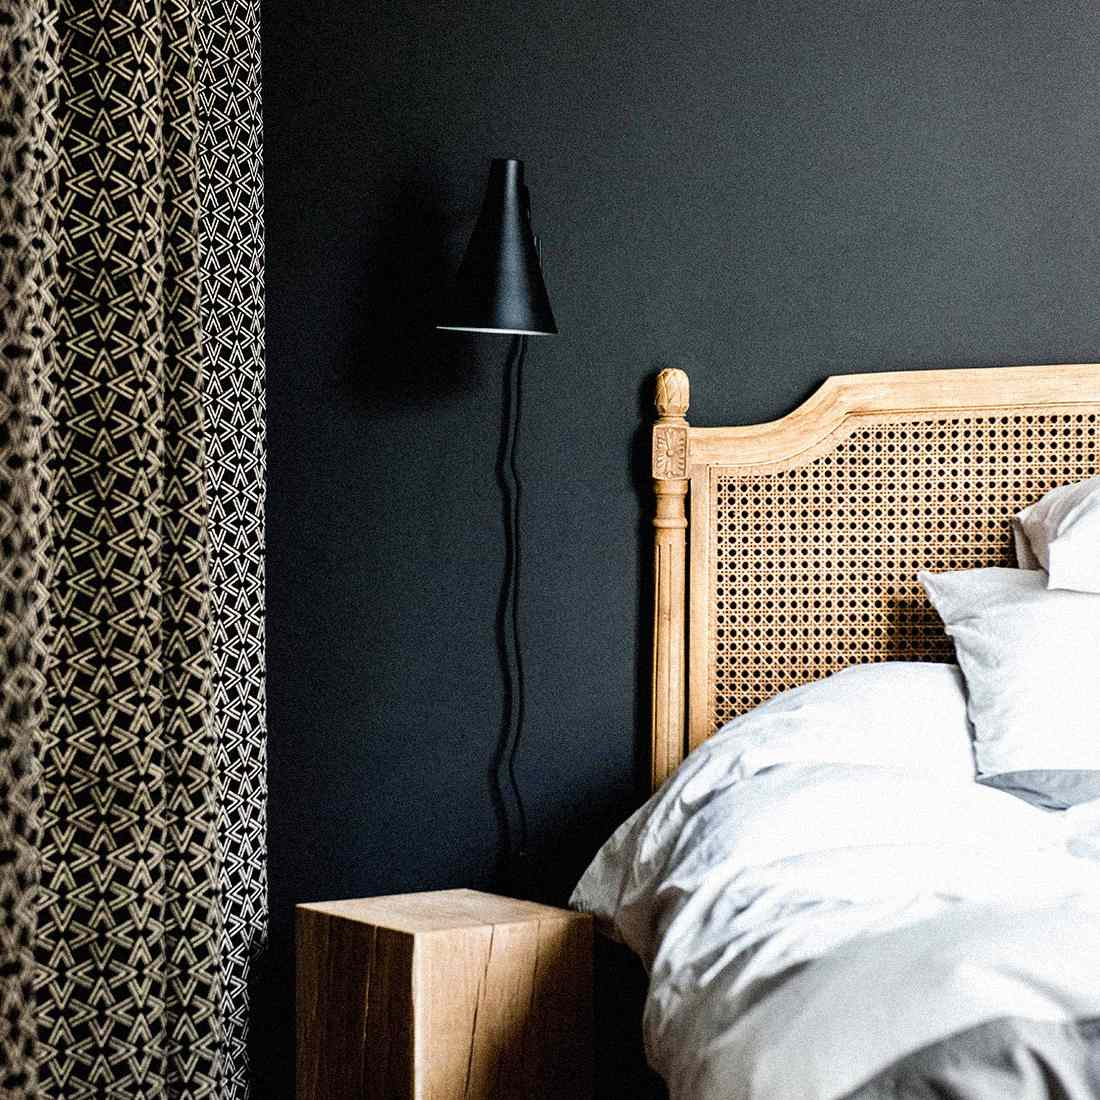 16 Dark Bedroom Ideas For A Moody And Dramatic Space